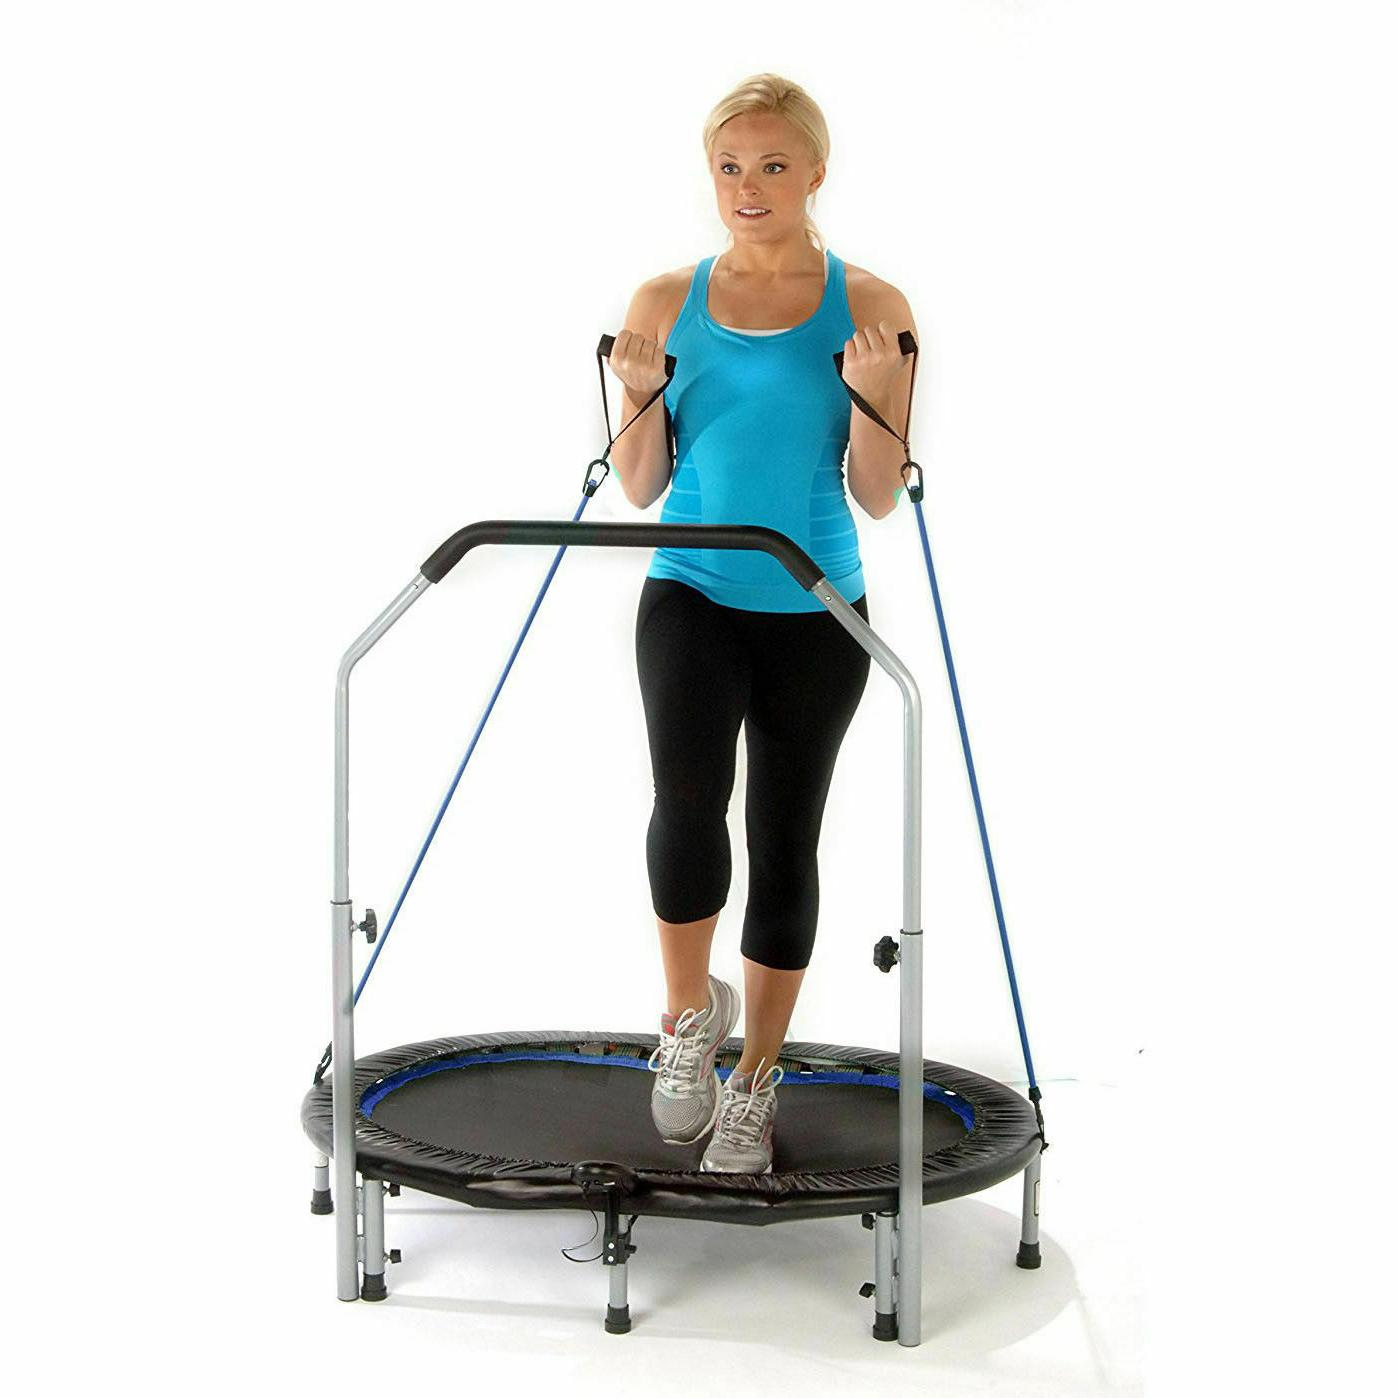 55 inch fitness trampoline intone oval jogger